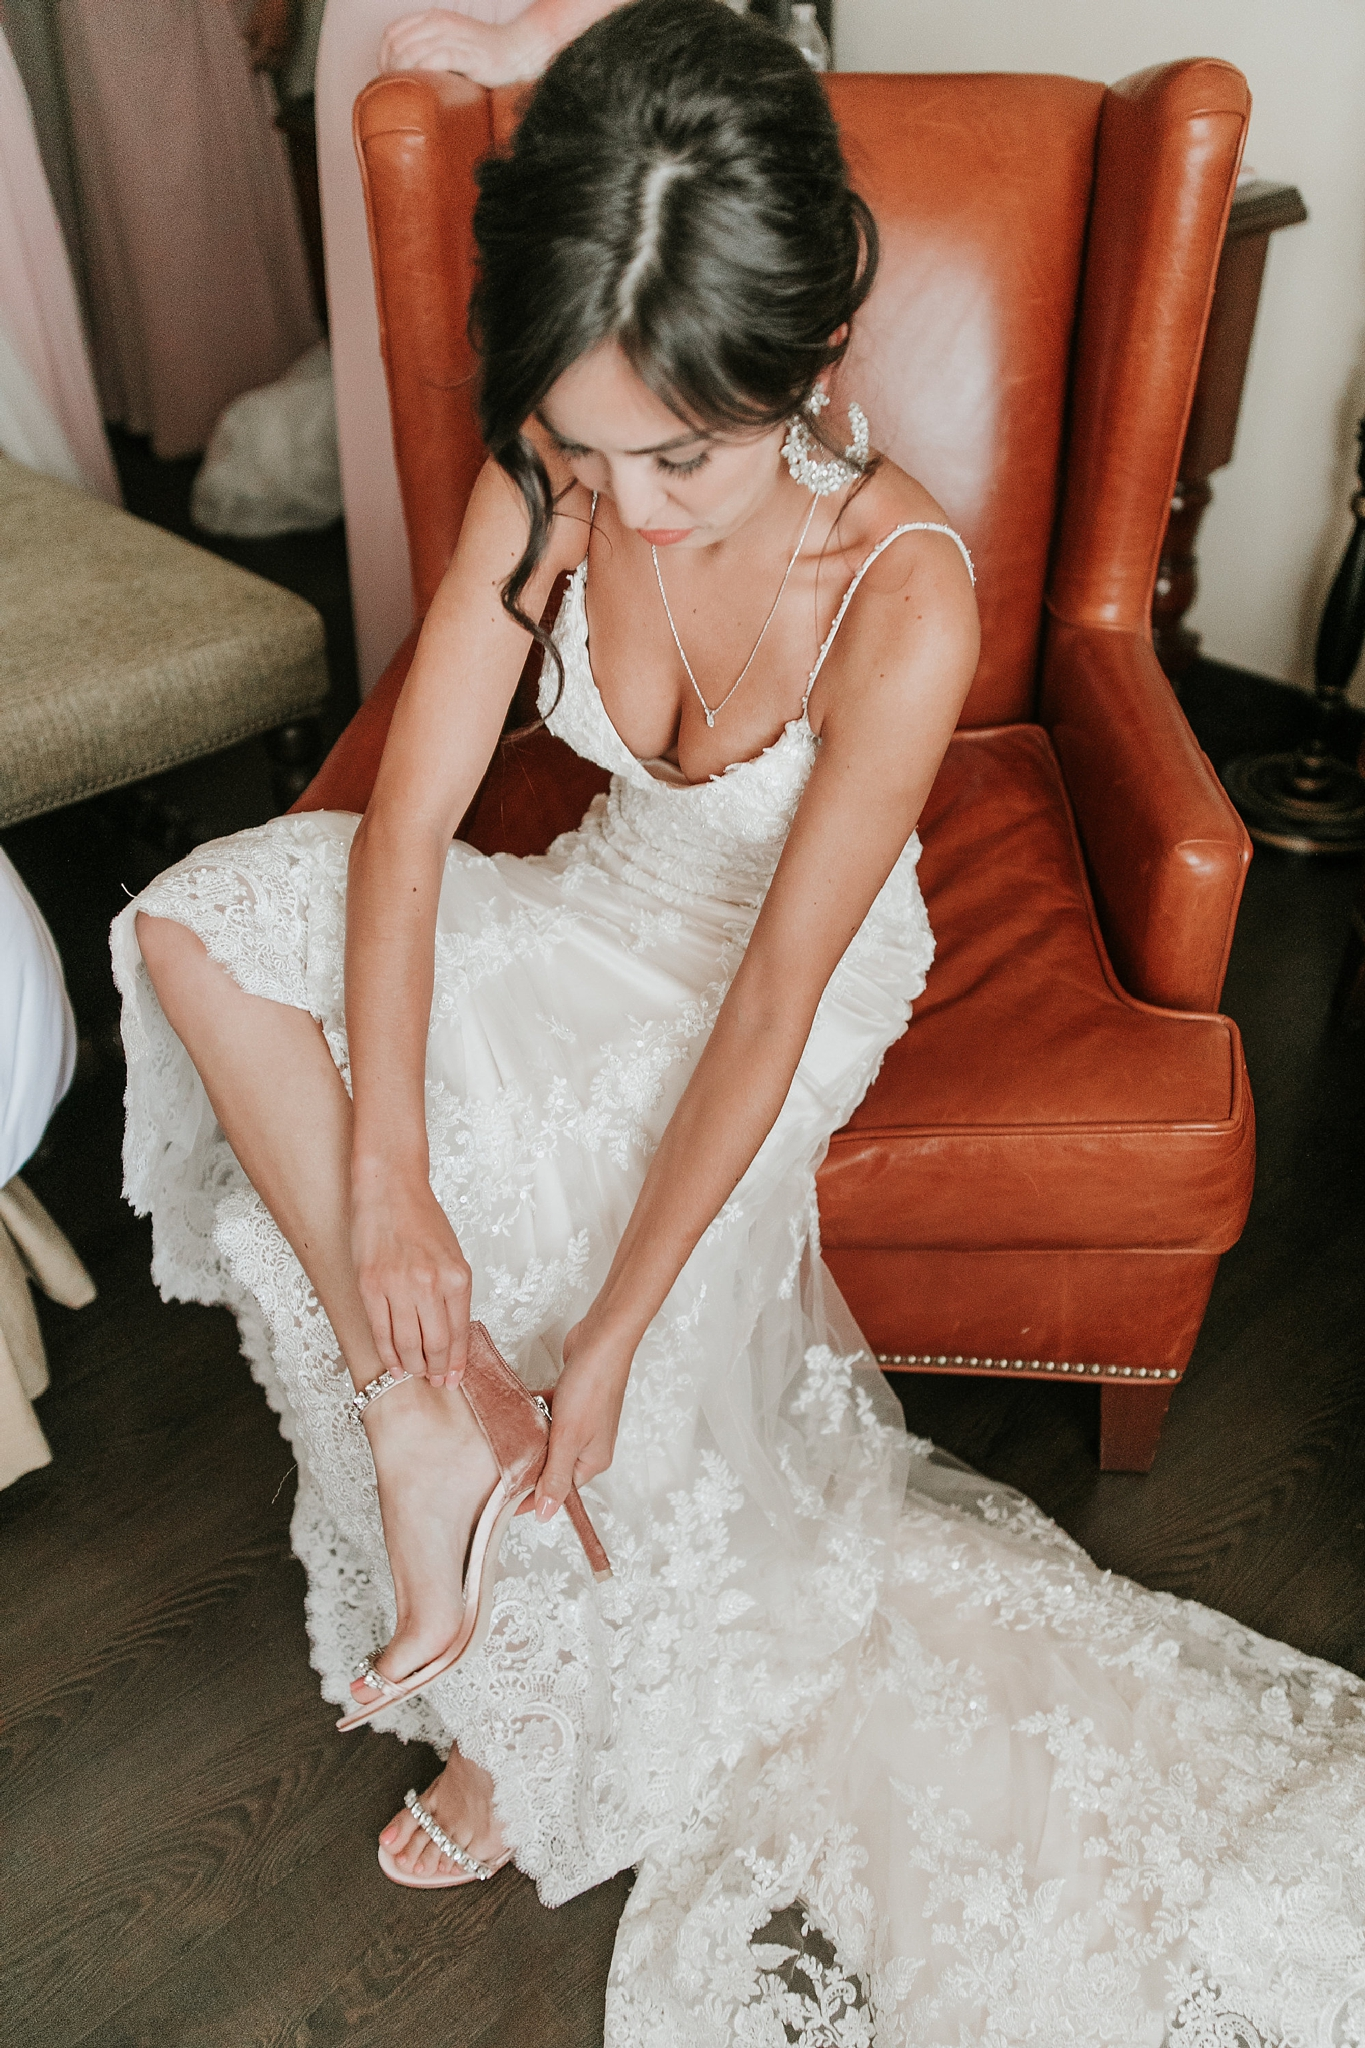 Alicia+lucia+photography+-+albuquerque+wedding+photographer+-+santa+fe+wedding+photography+-+new+mexico+wedding+photographer+-+new+mexico+wedding+-+new+mexico+wedding+-+colorado+wedding+-+bridal+shoes+-+bridal+inspo_0026.jpg